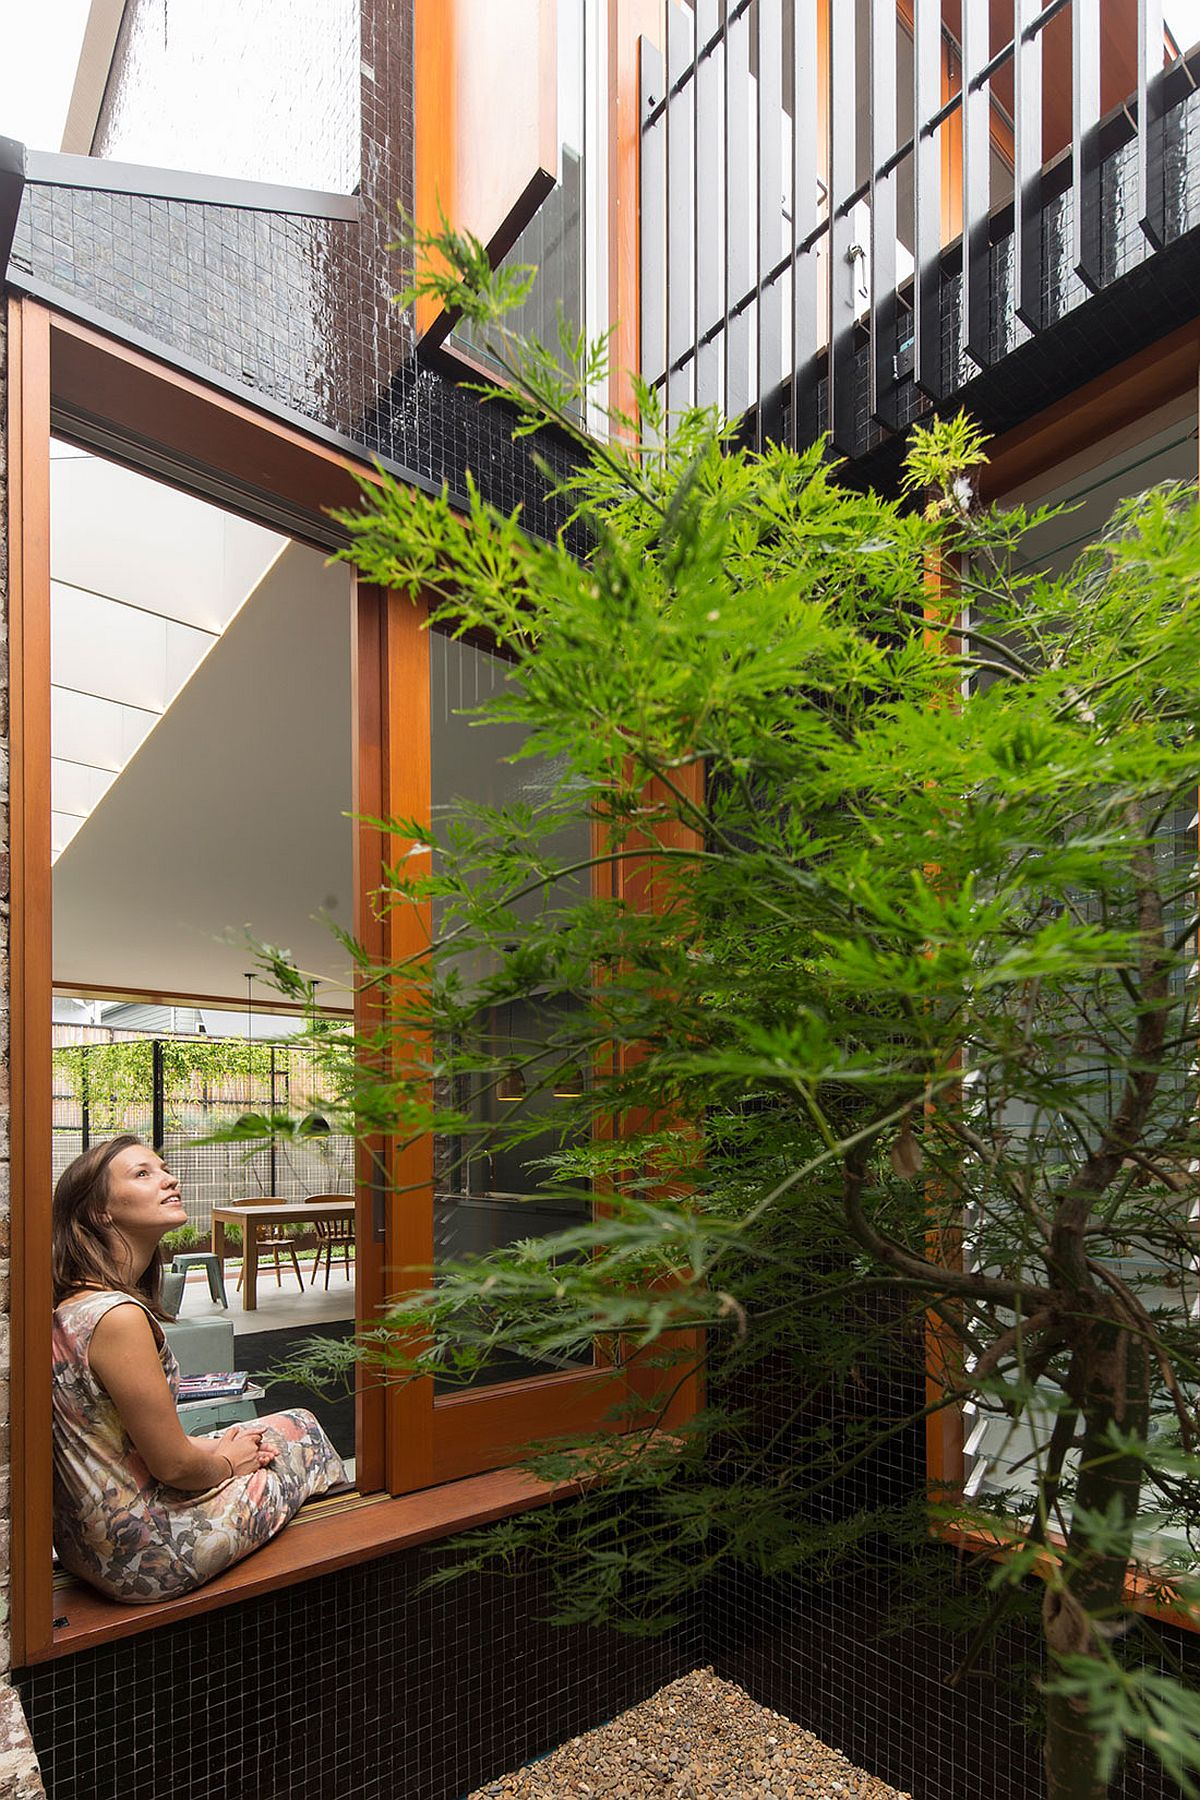 Japanese Maple for the tile lined courtyard offers a relaxing nook